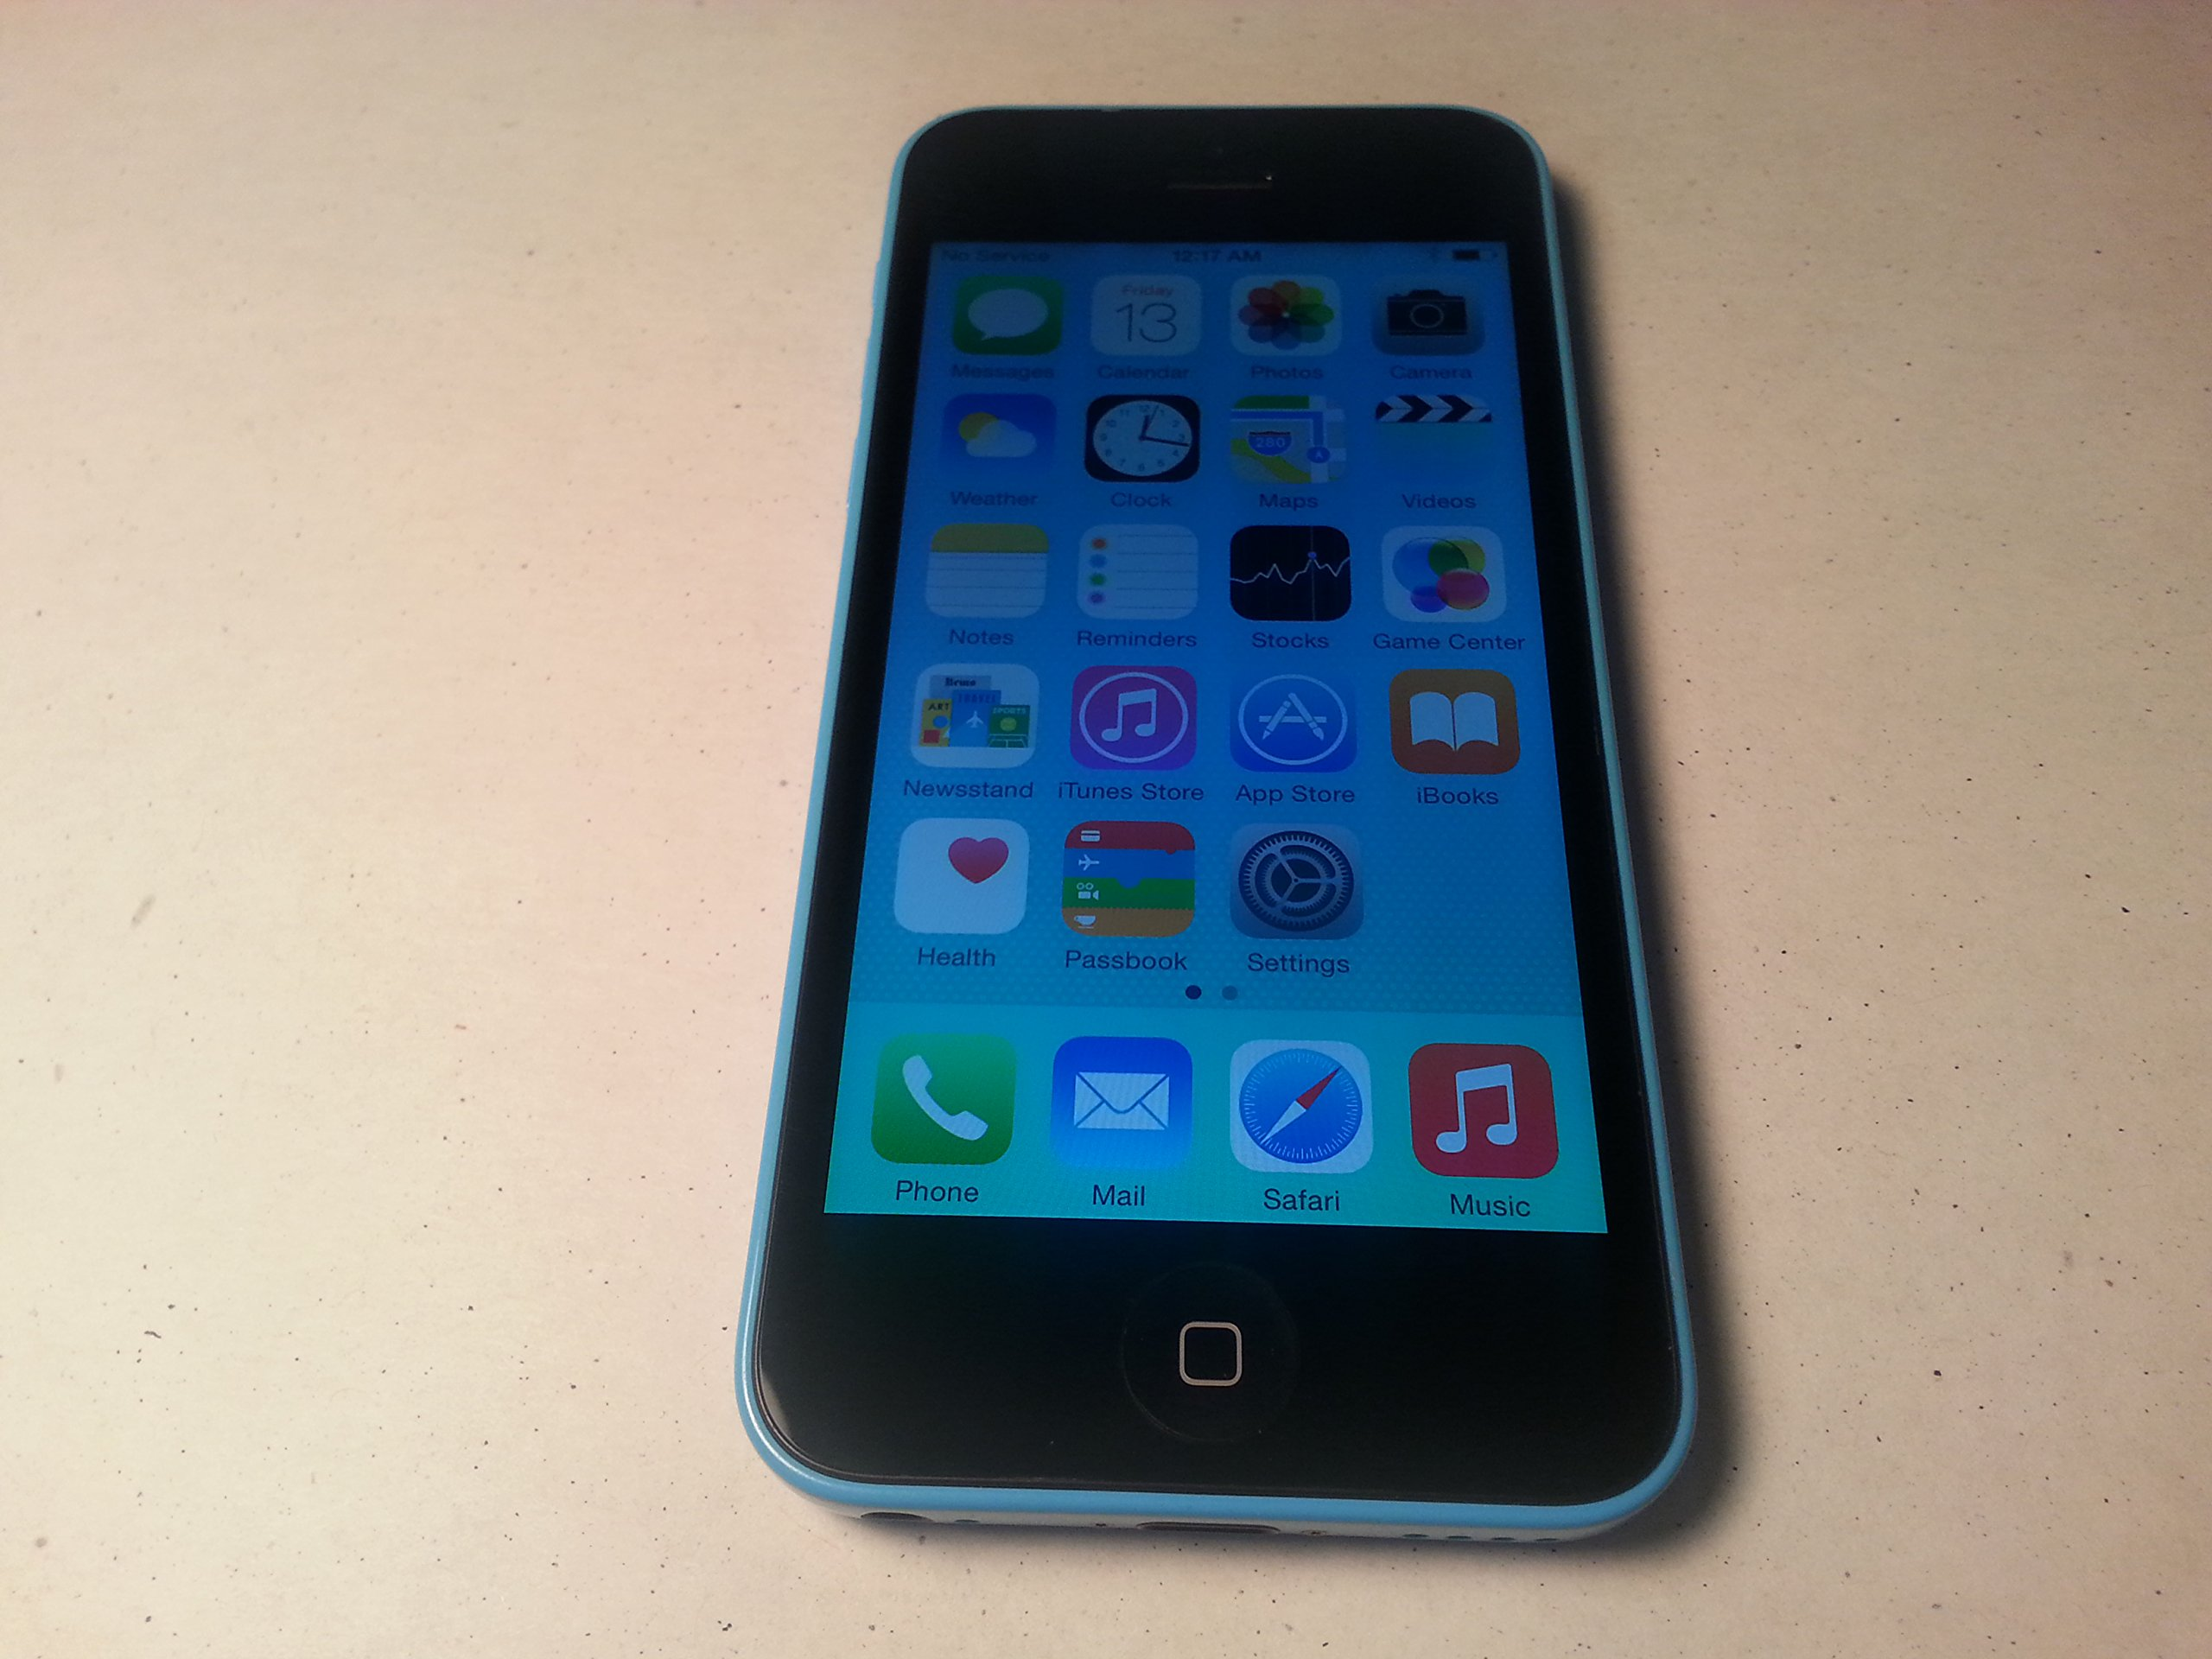 prepaid iphone 5c talk apple iphone 5c prepaid smartphone 8gb blue 12800